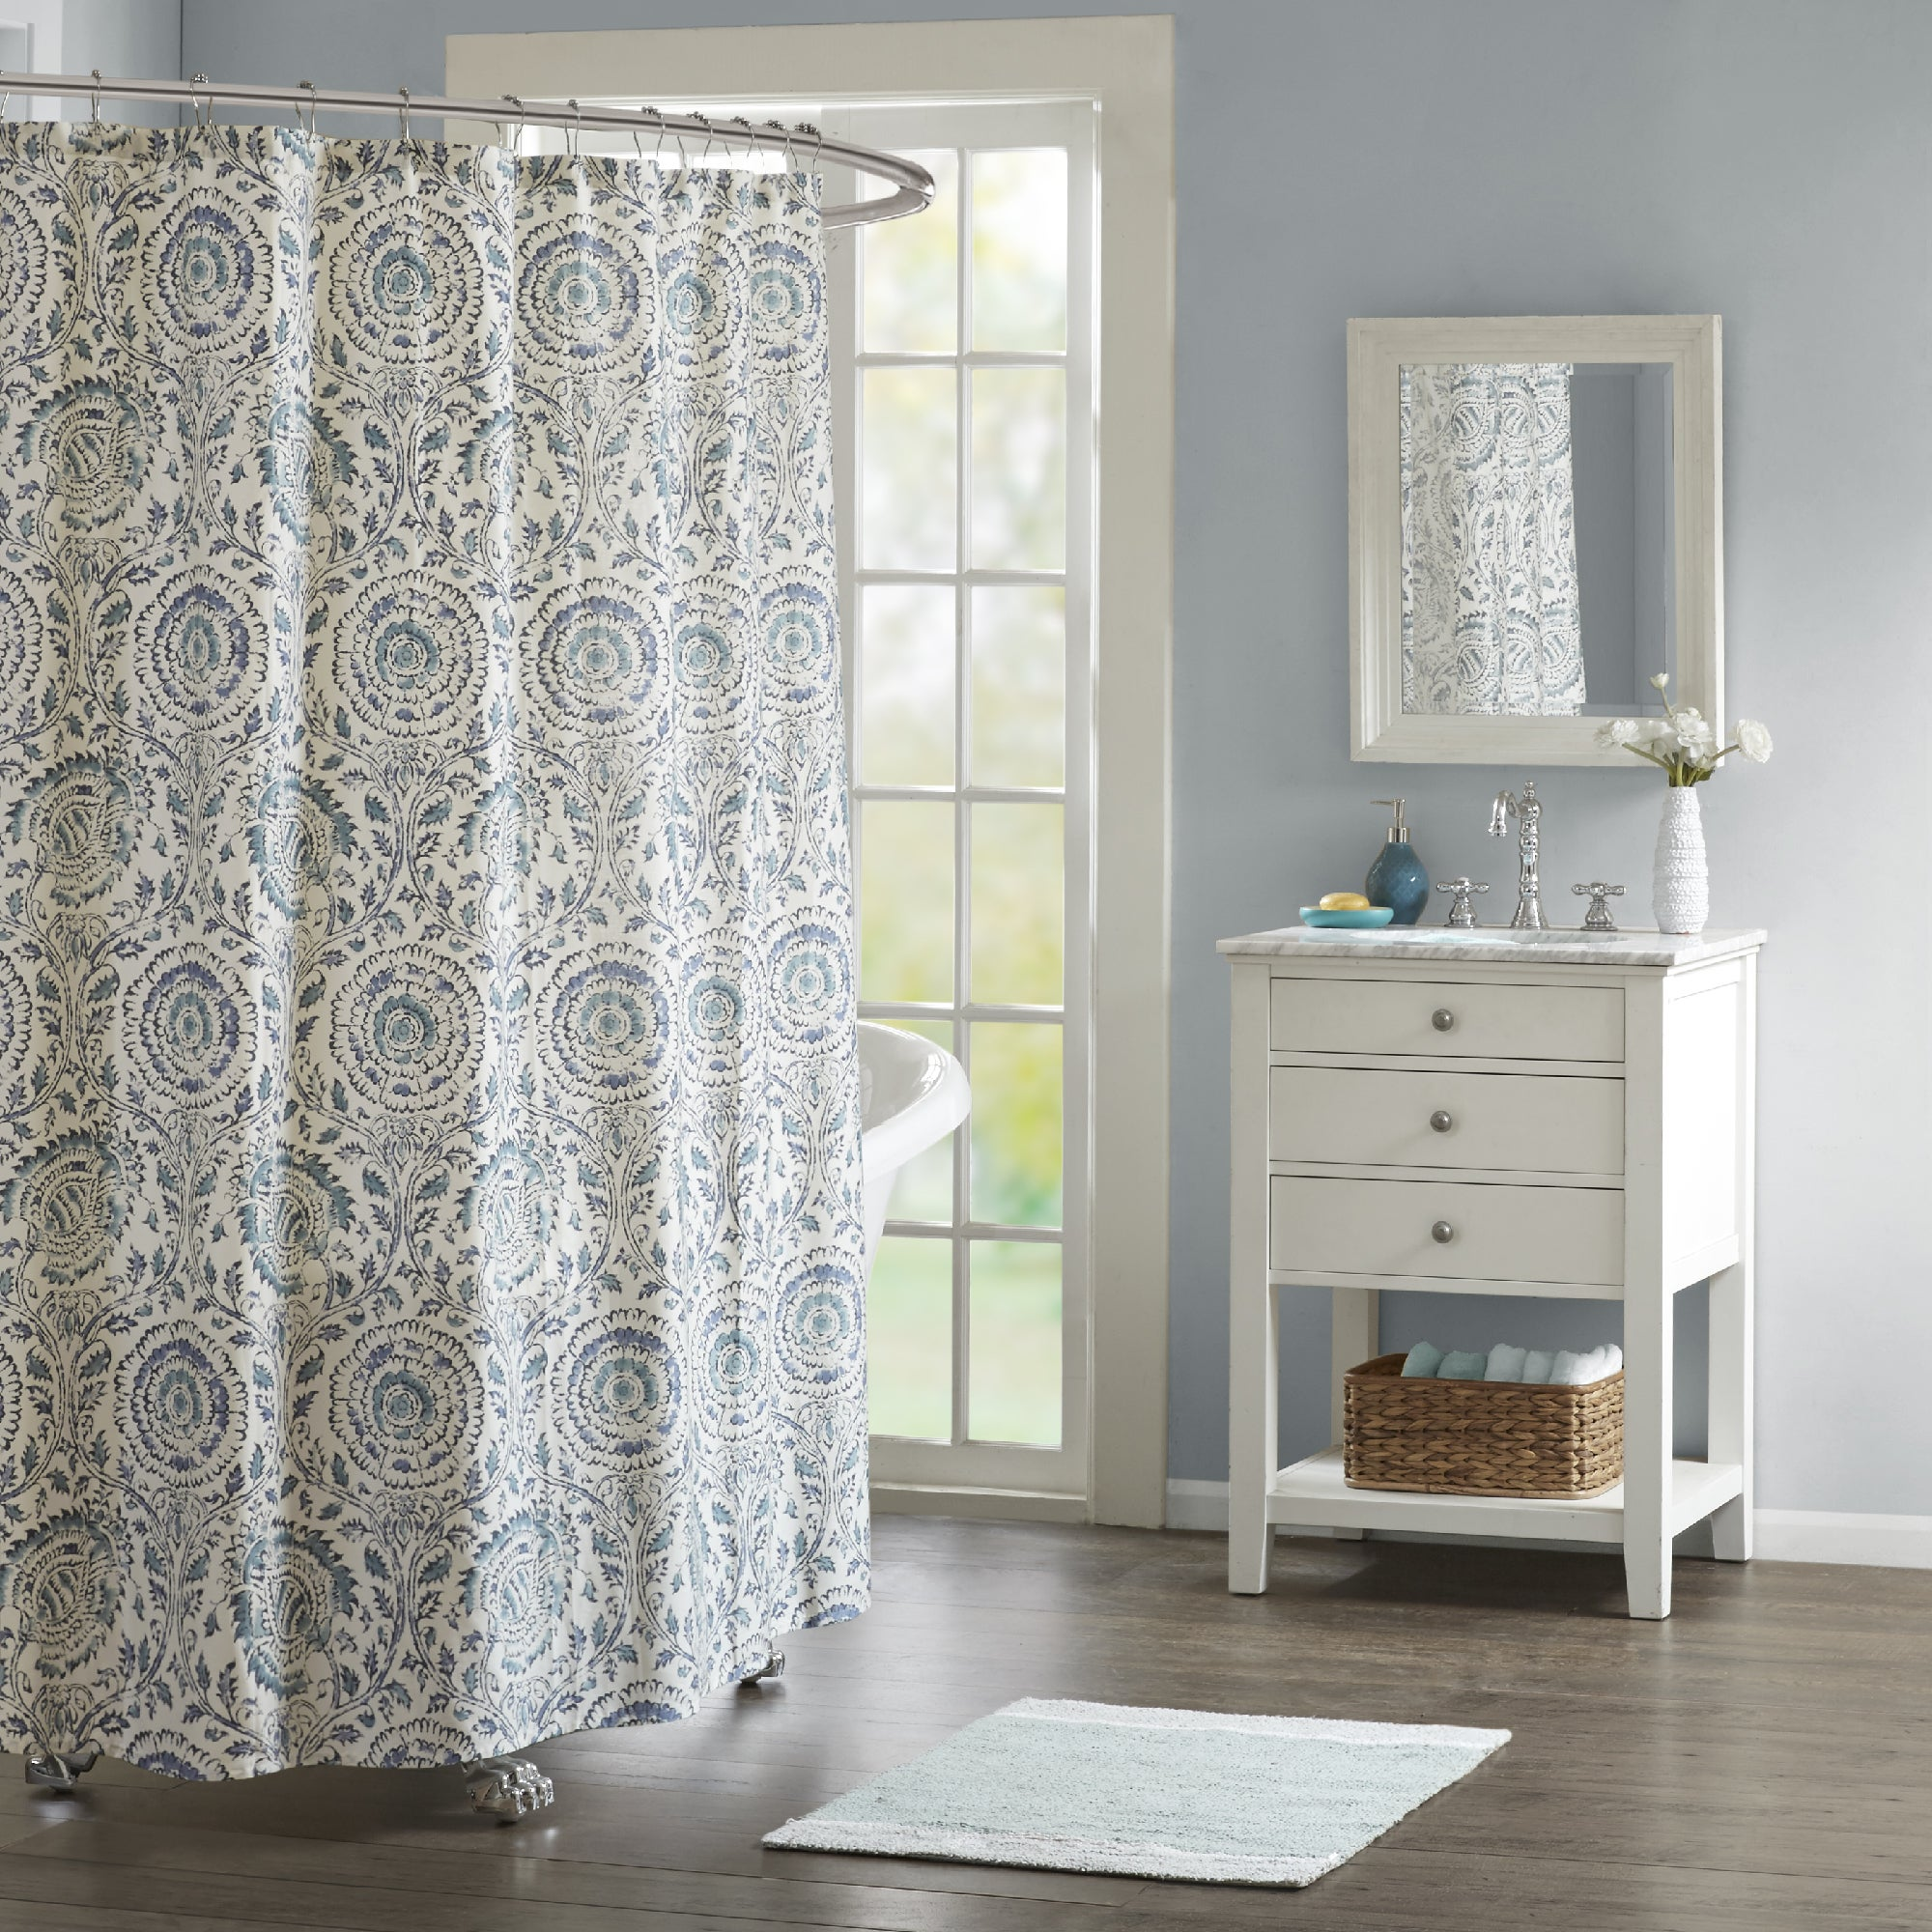 grey shower full designs black decorating size yellow white back green pictures curtains paisley brown dining tab sophisticated curtain teal room blue gray of and drapes